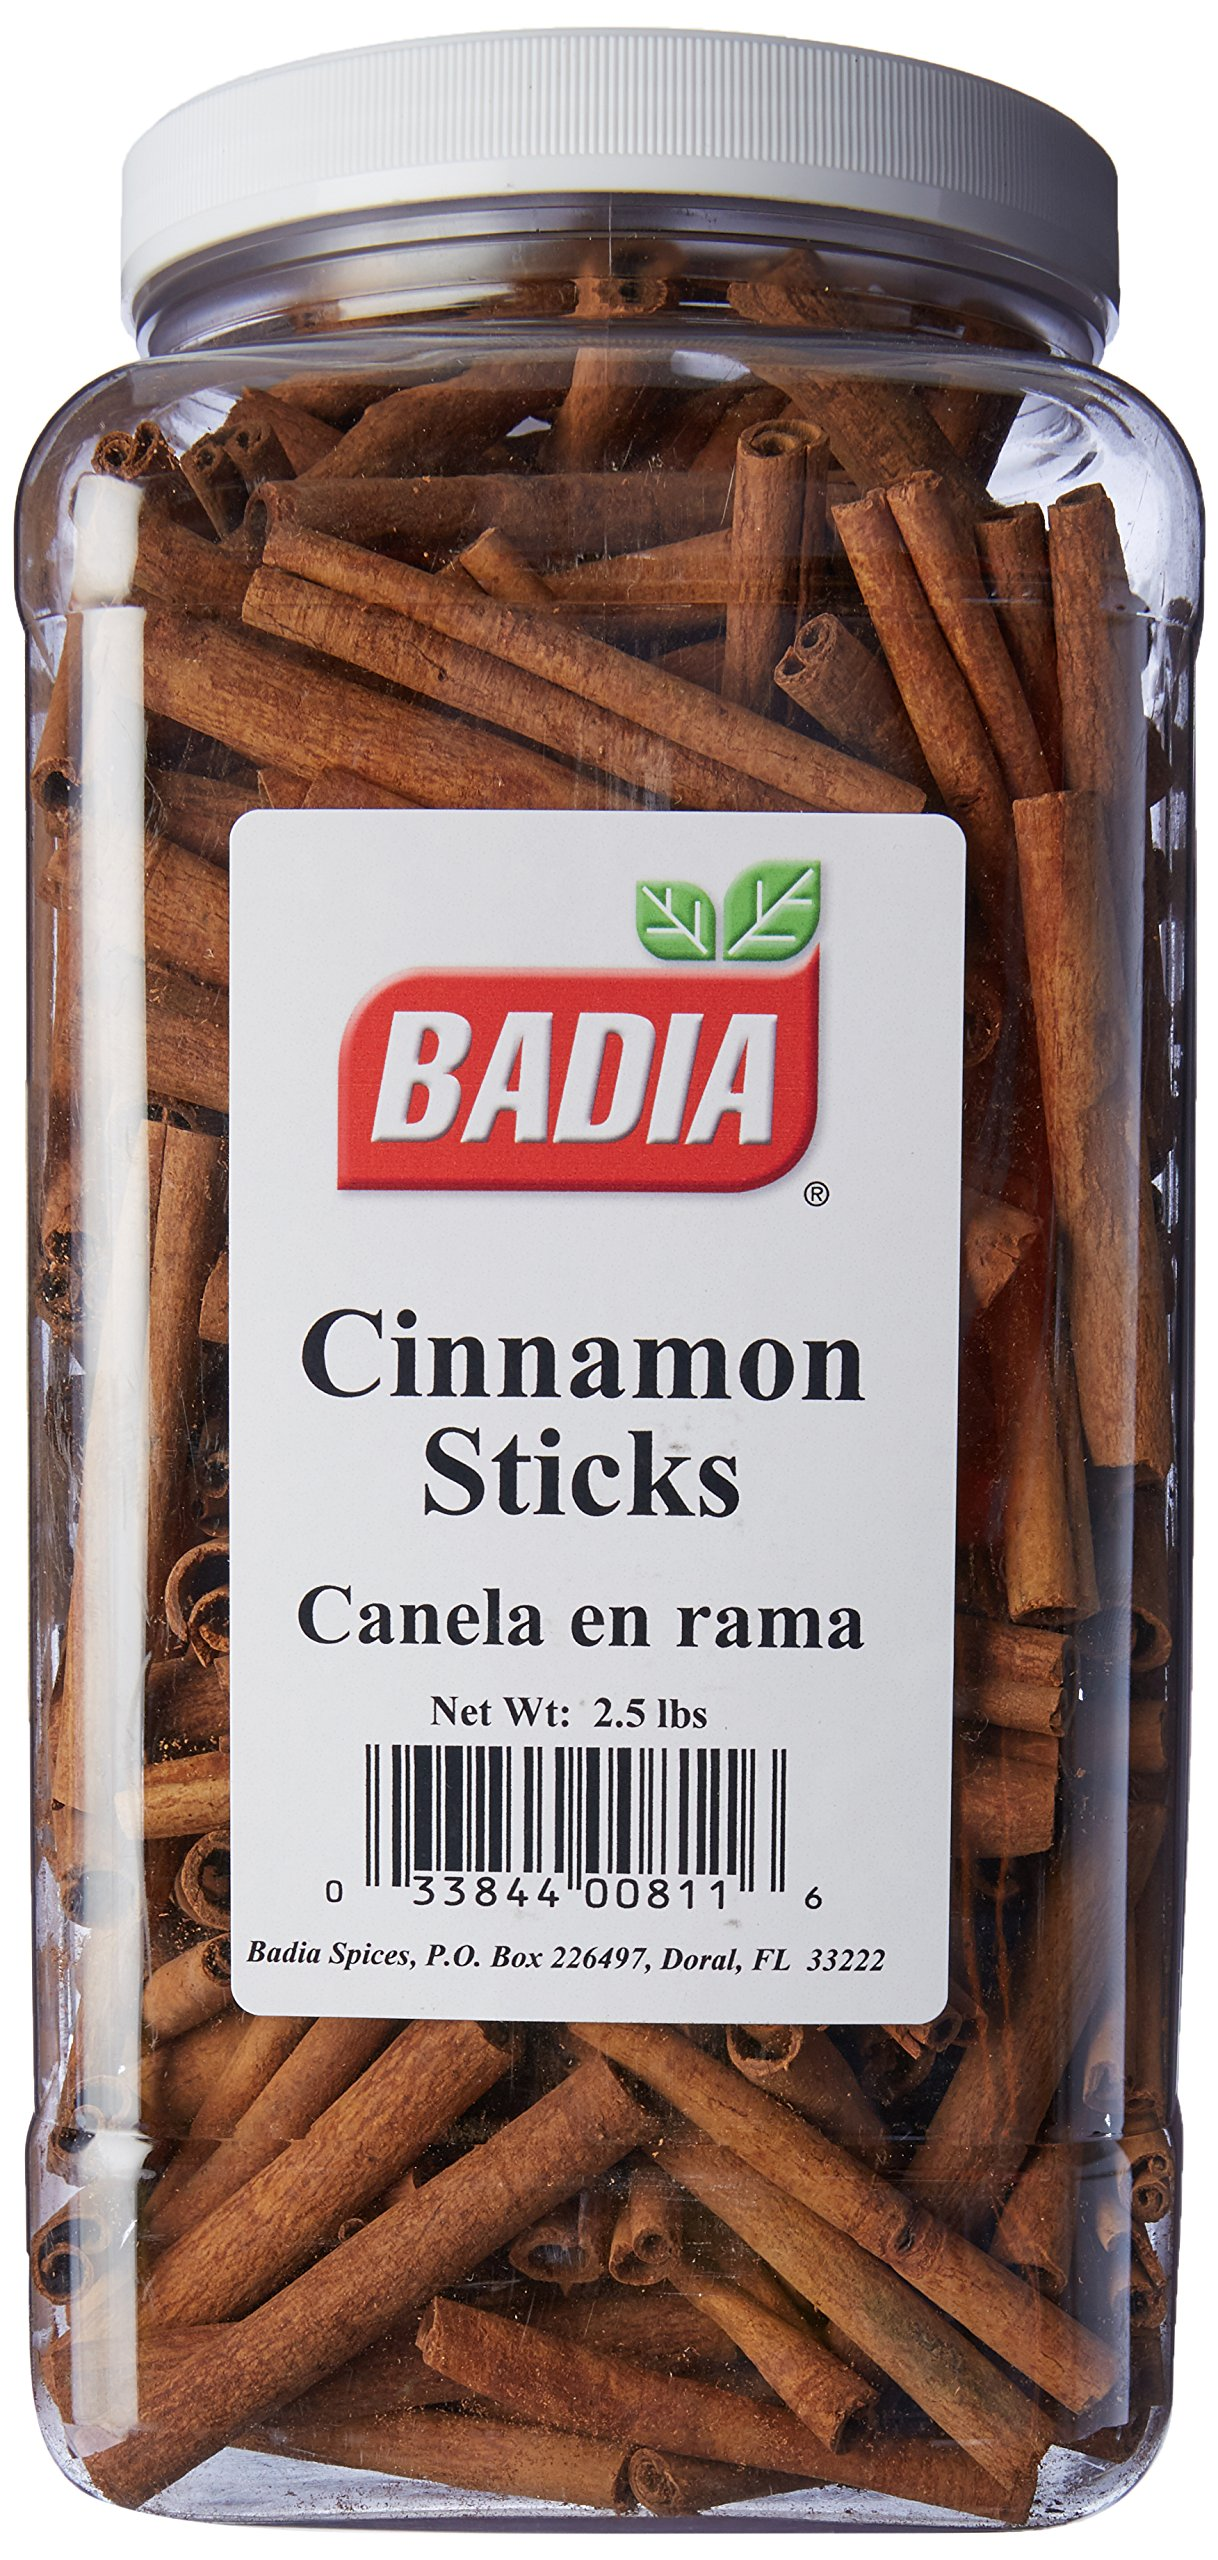 Badia Cinnamon Sticks 2.5 lbs